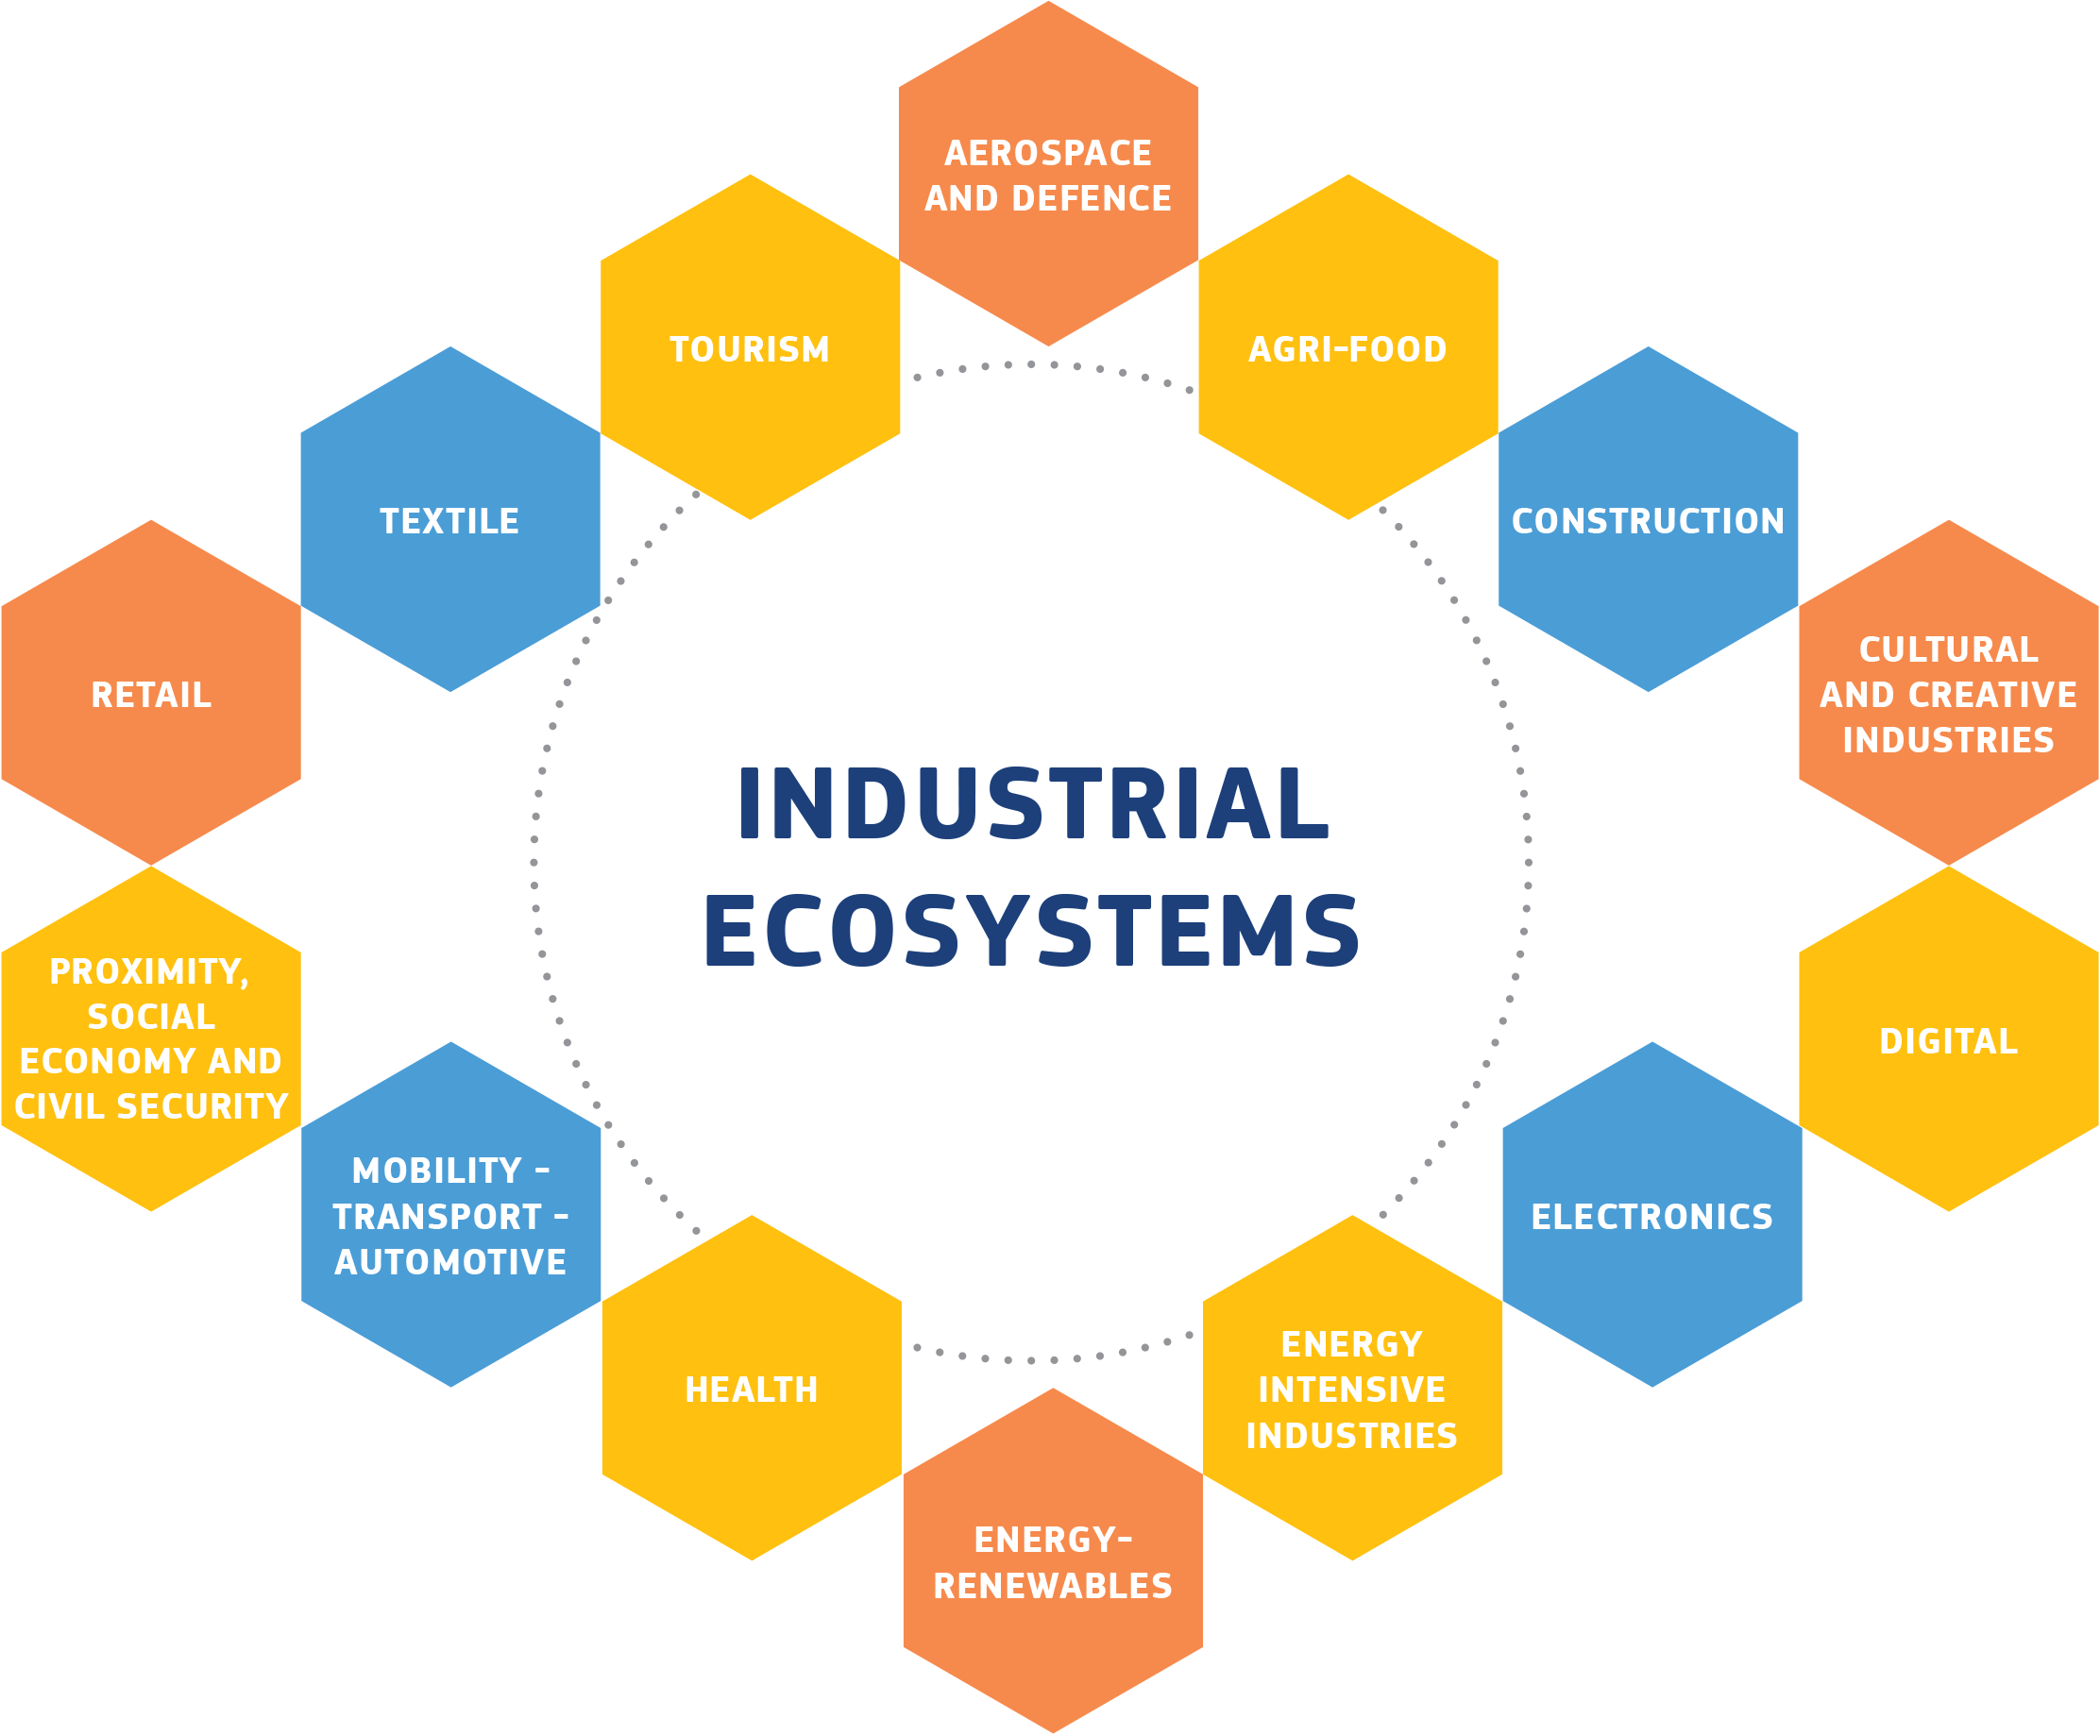 Industrial ecosystems